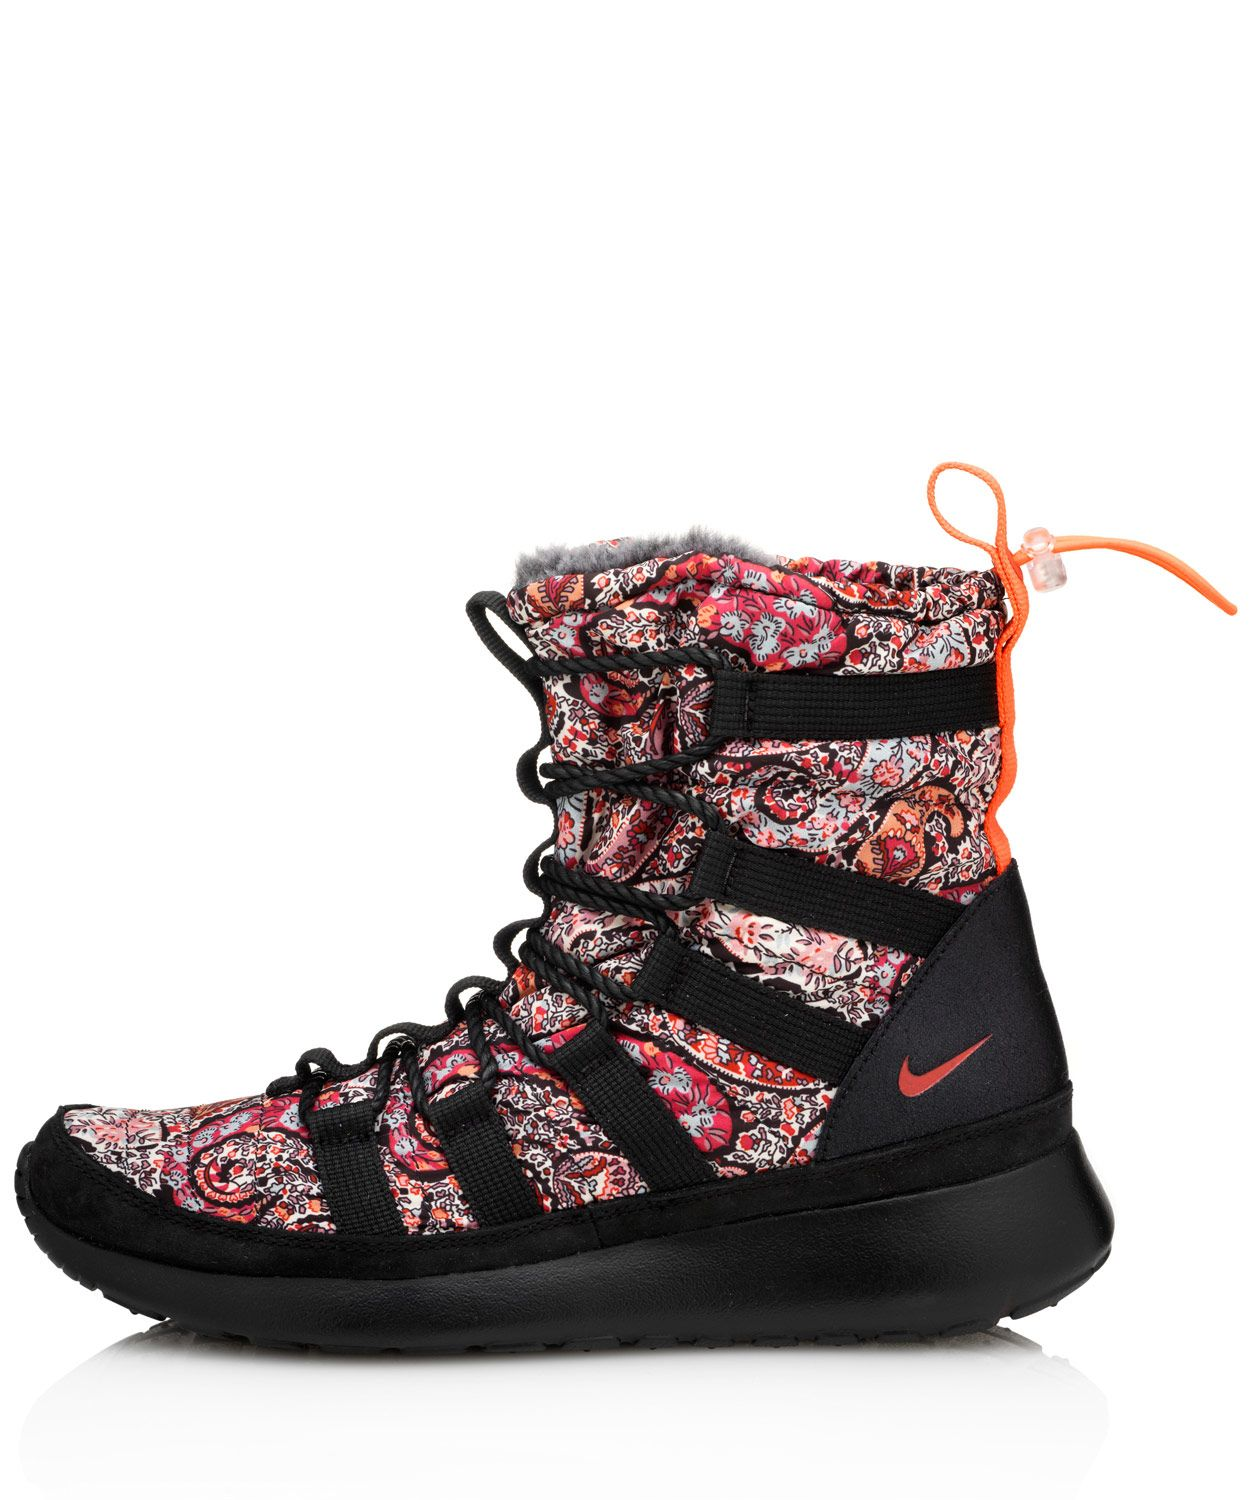 Or these! I'm not fussy XD Nike X Liberty Black Bourton